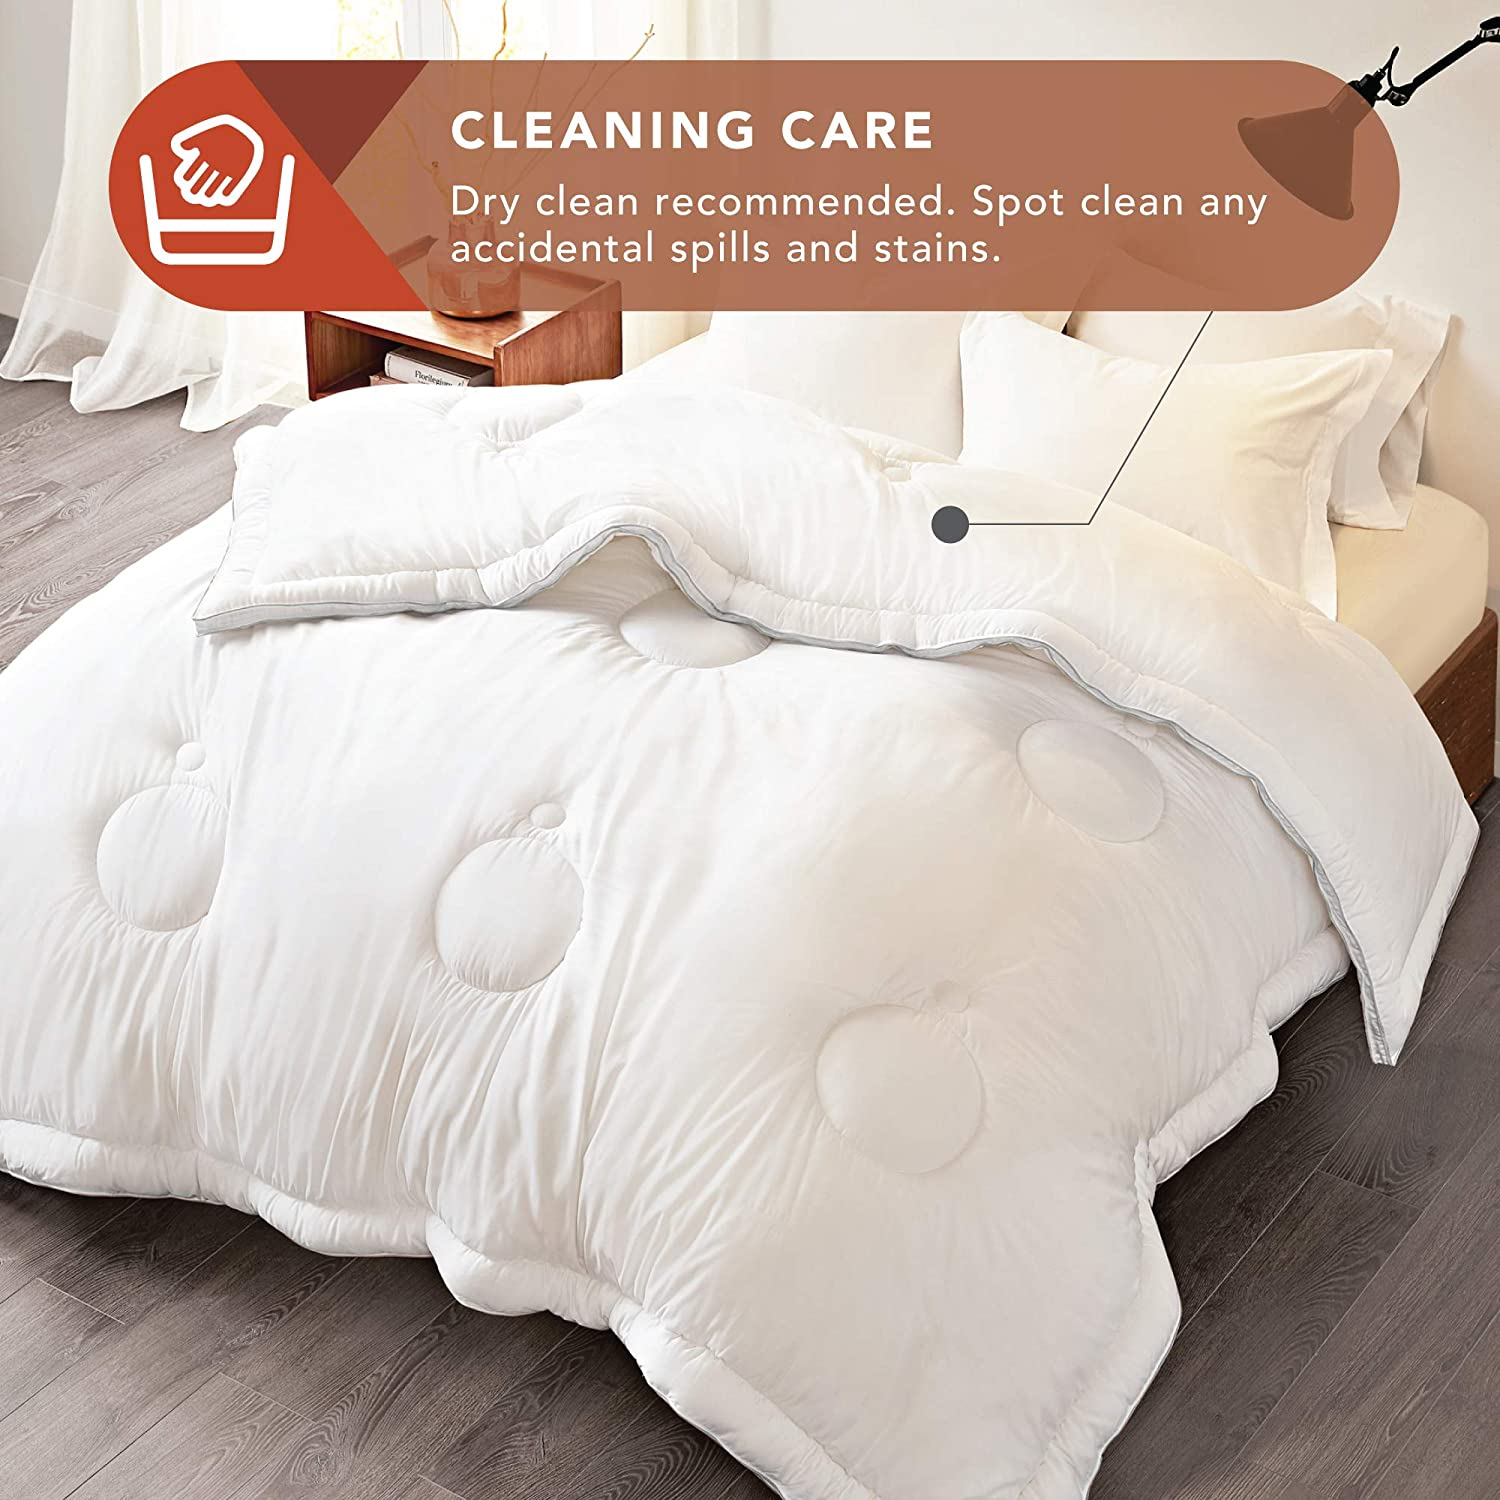 Forever Fluffy Eco Friendly Twin//Twin XL Silky Soft White Down Alternative Comforter for Hot Sleepers-Plushest Breathable Stand-Alone Quilted Eucalyptus Blanket Codi All-Season Cooling Comforter